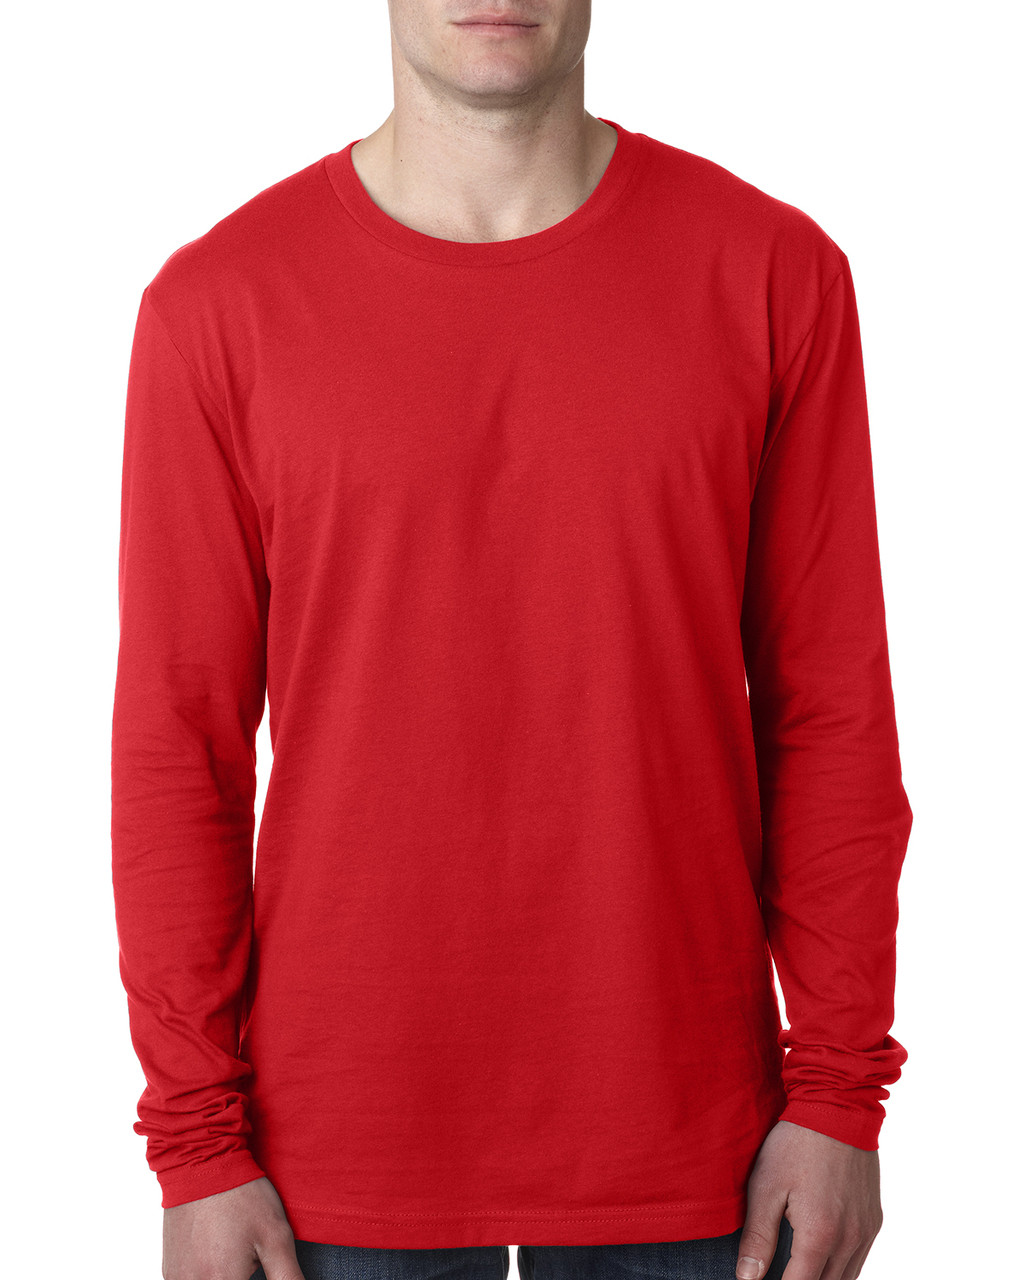 02ad8cf551be Red - N3601 Next Level Men's Premium Fitted Long Sleeve Crew Tee |  Blankclothing.ca